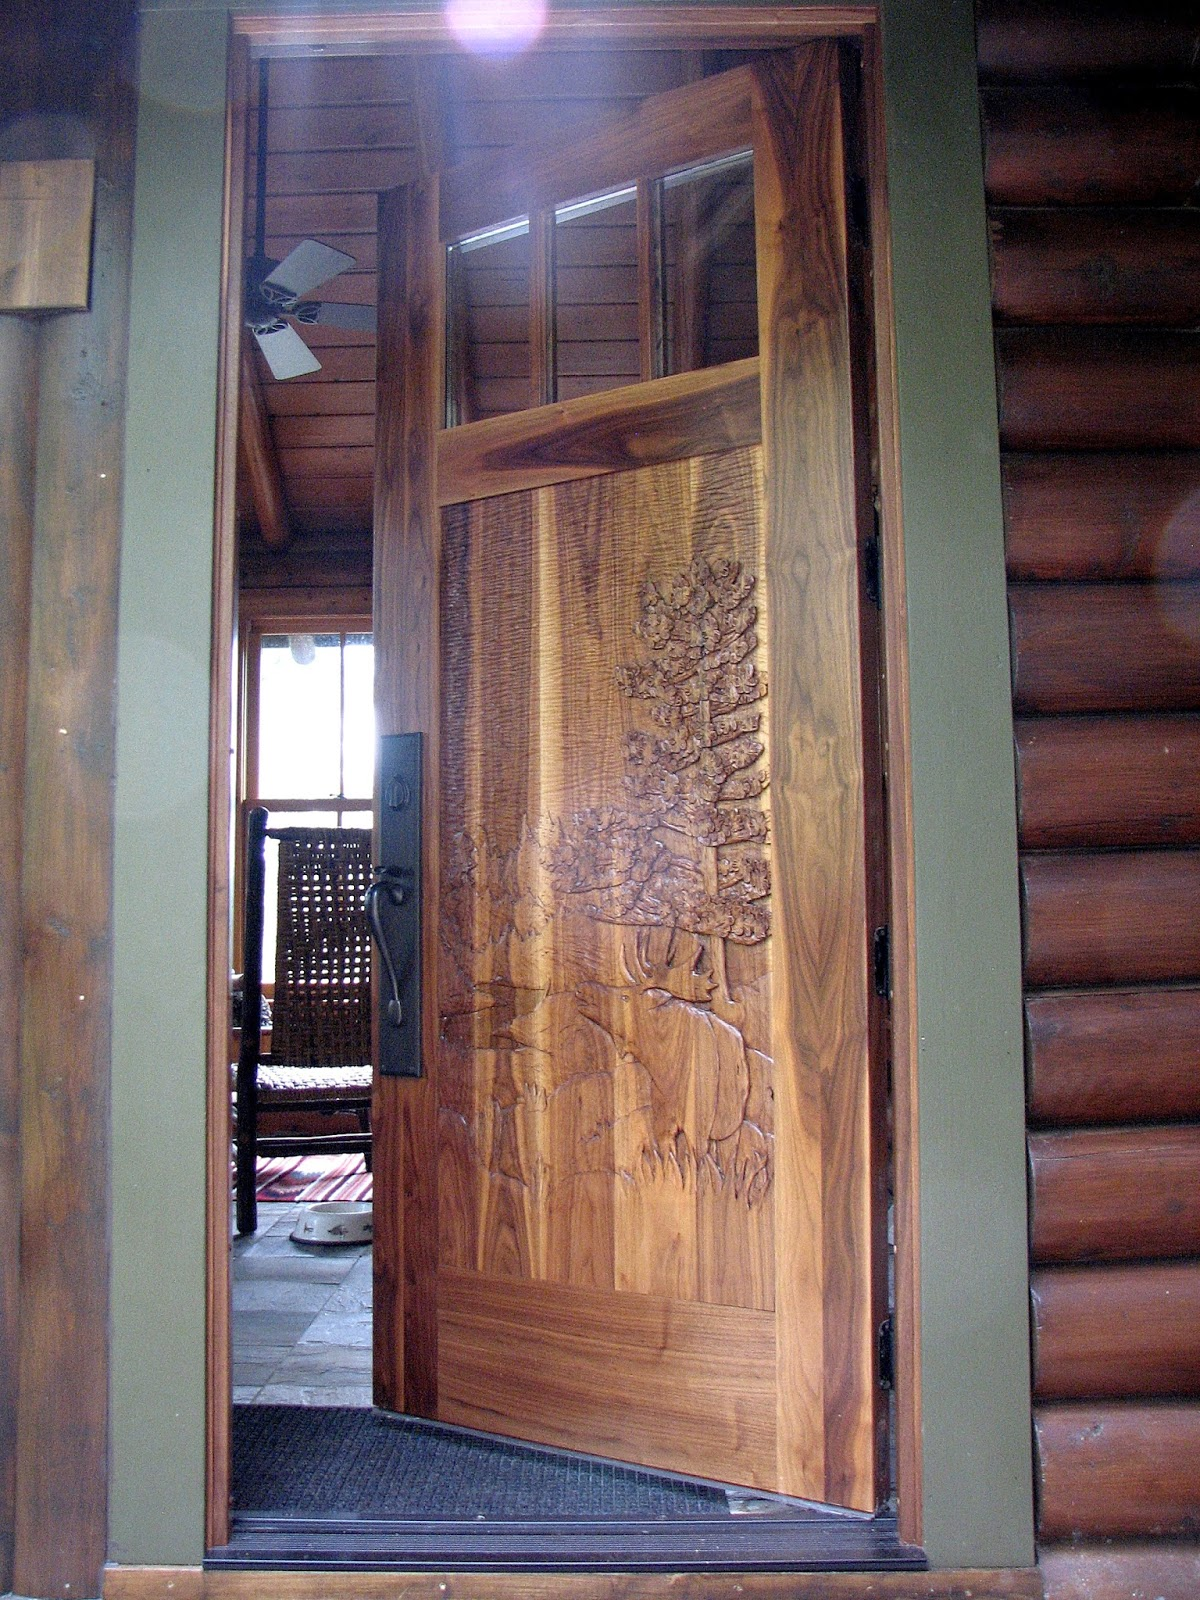 Black, walnut, wood, carving, entry, door, john, huisman, minnesota, wildlife, moose